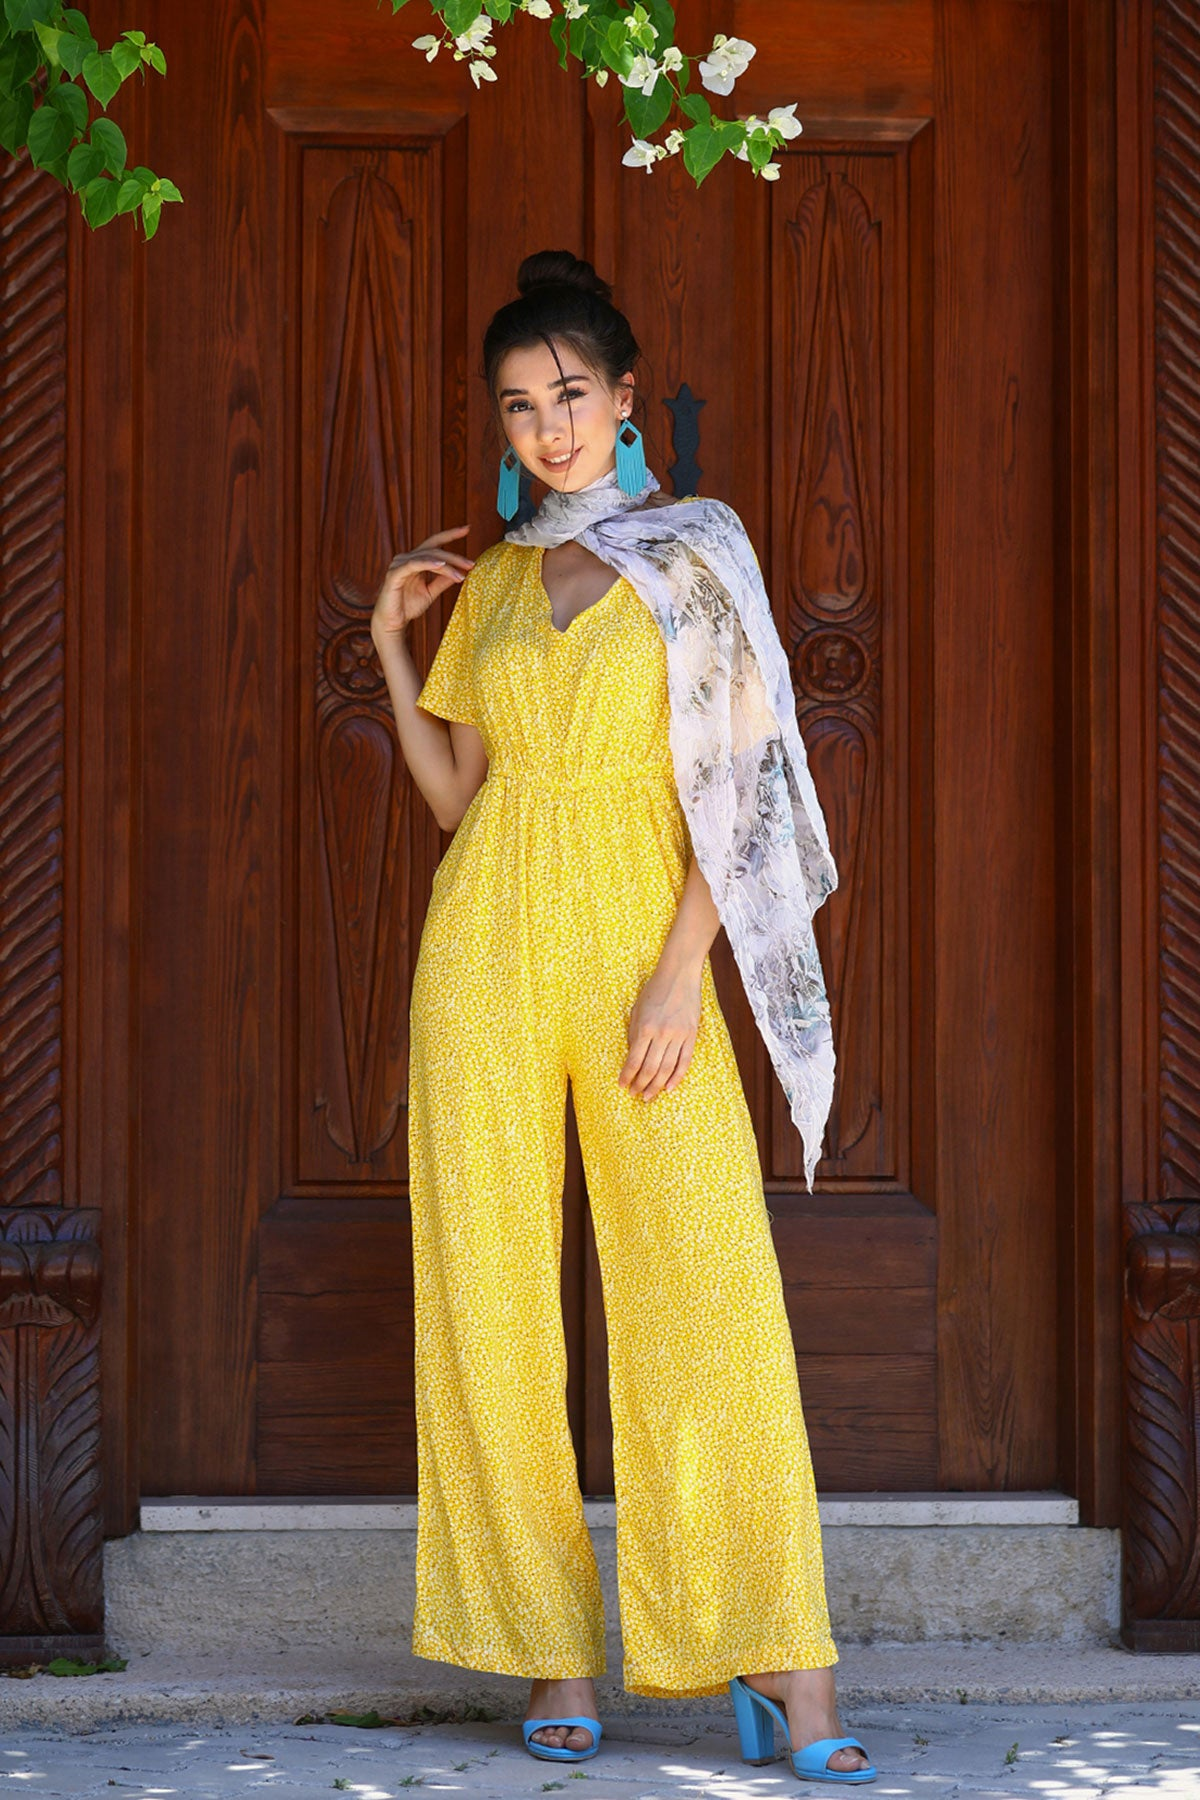 Women's Patterned Yellow Overall